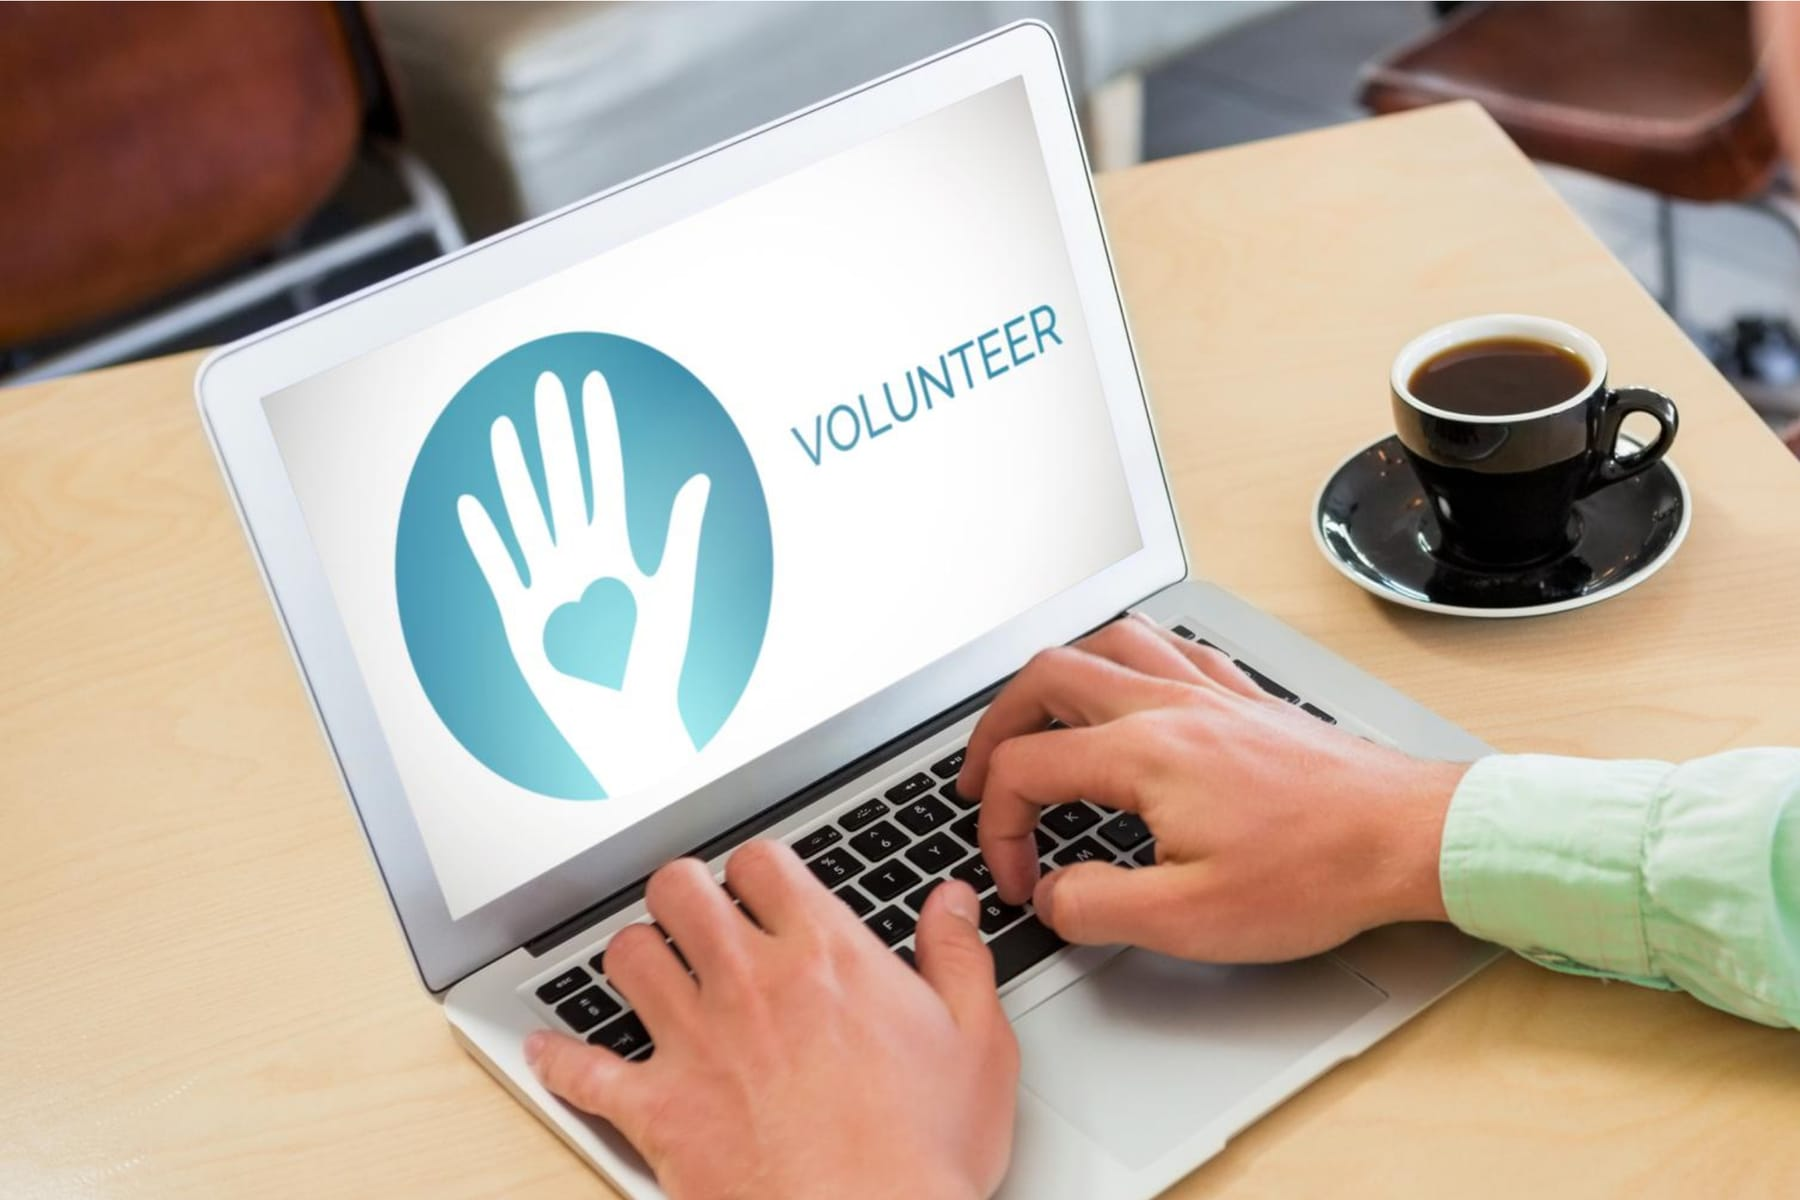 Man typing on his laptop with a volunteer icon on the screen